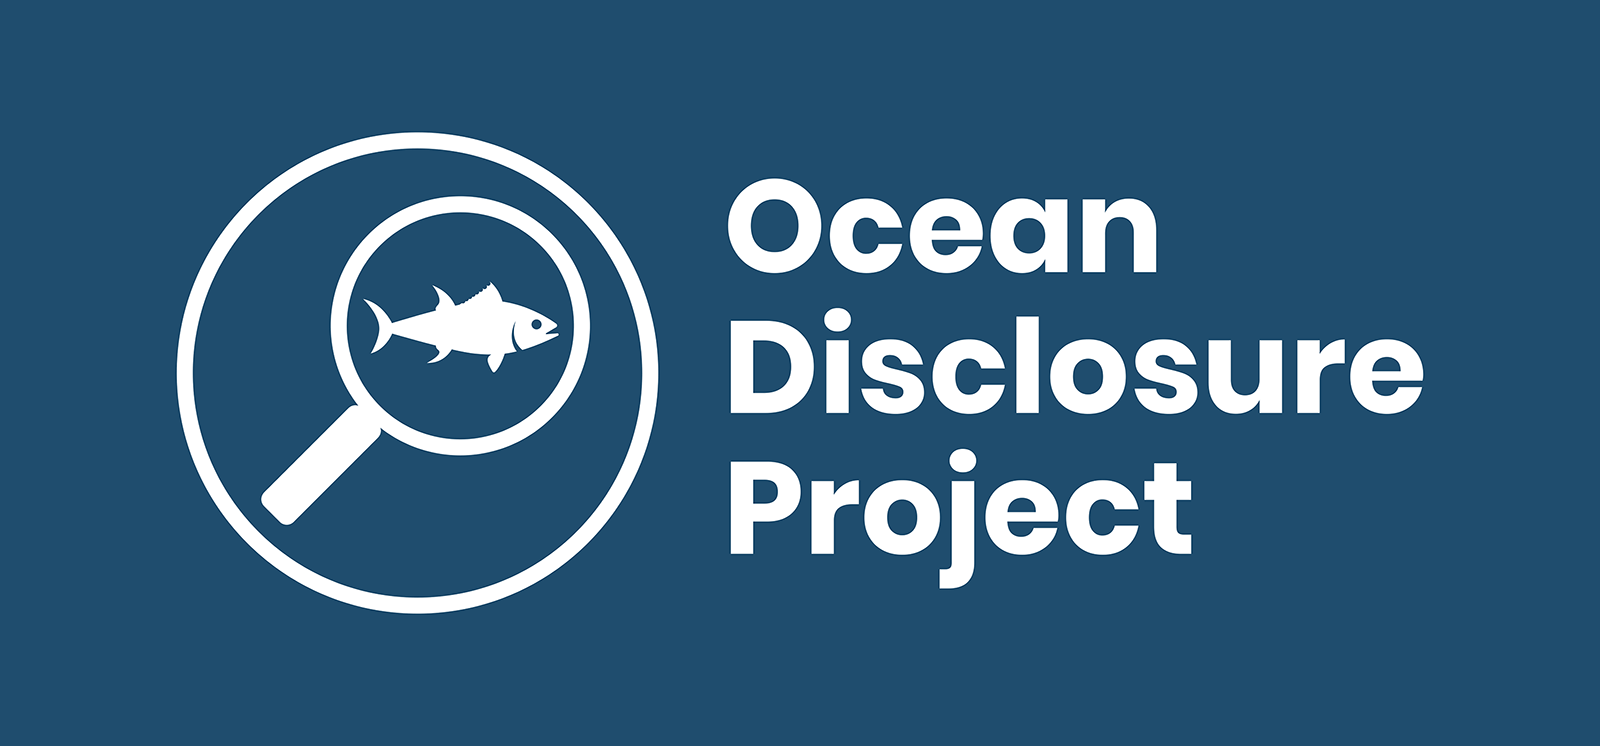 Logo von Ocean Disclosure Project